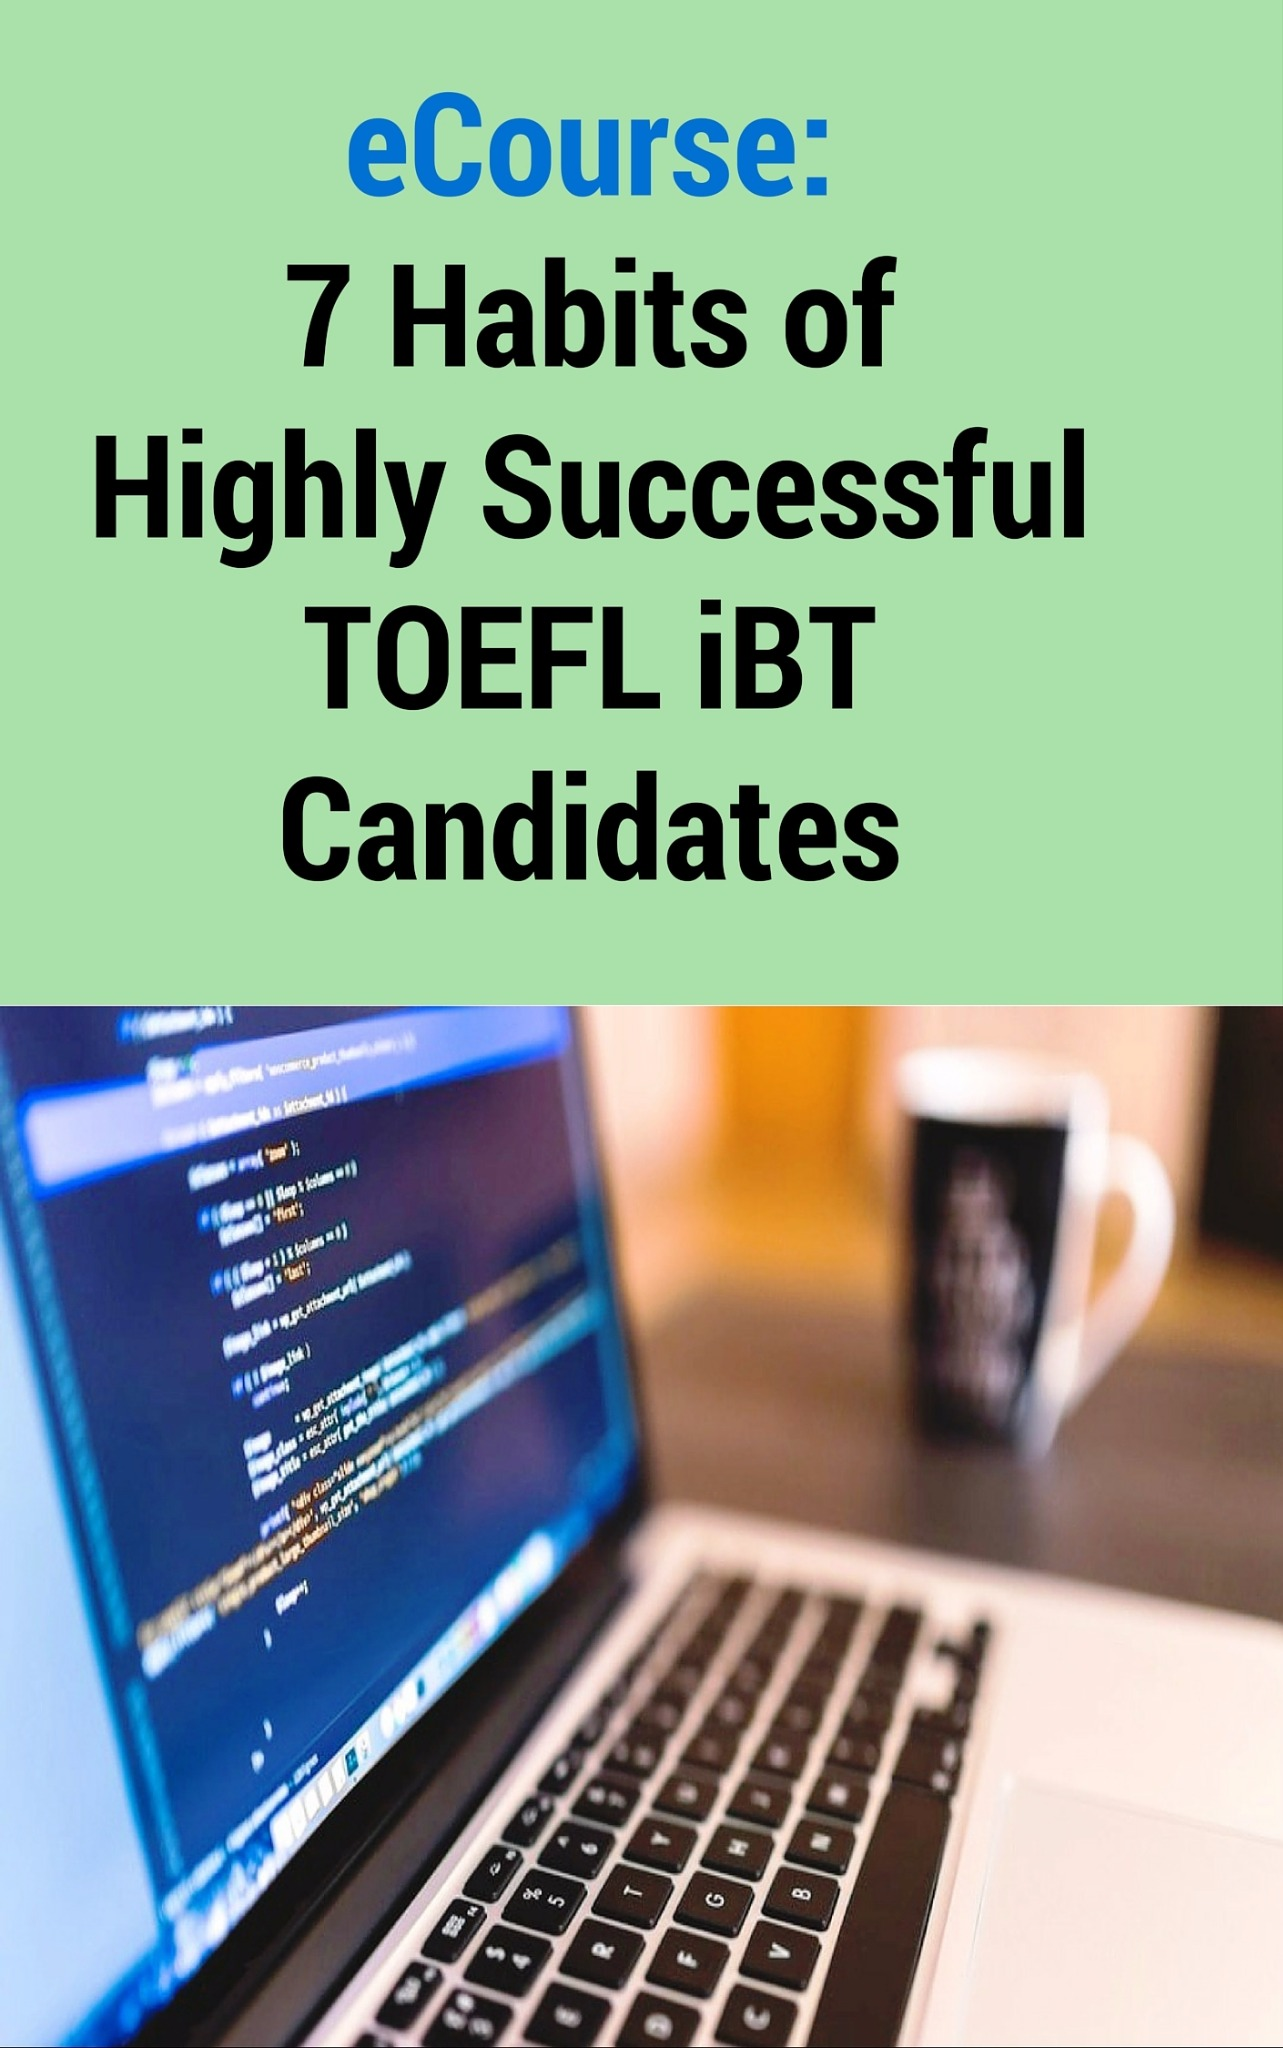 Wham Media's 7 Habits of Highly Successful TOEFL iBT© Candidates